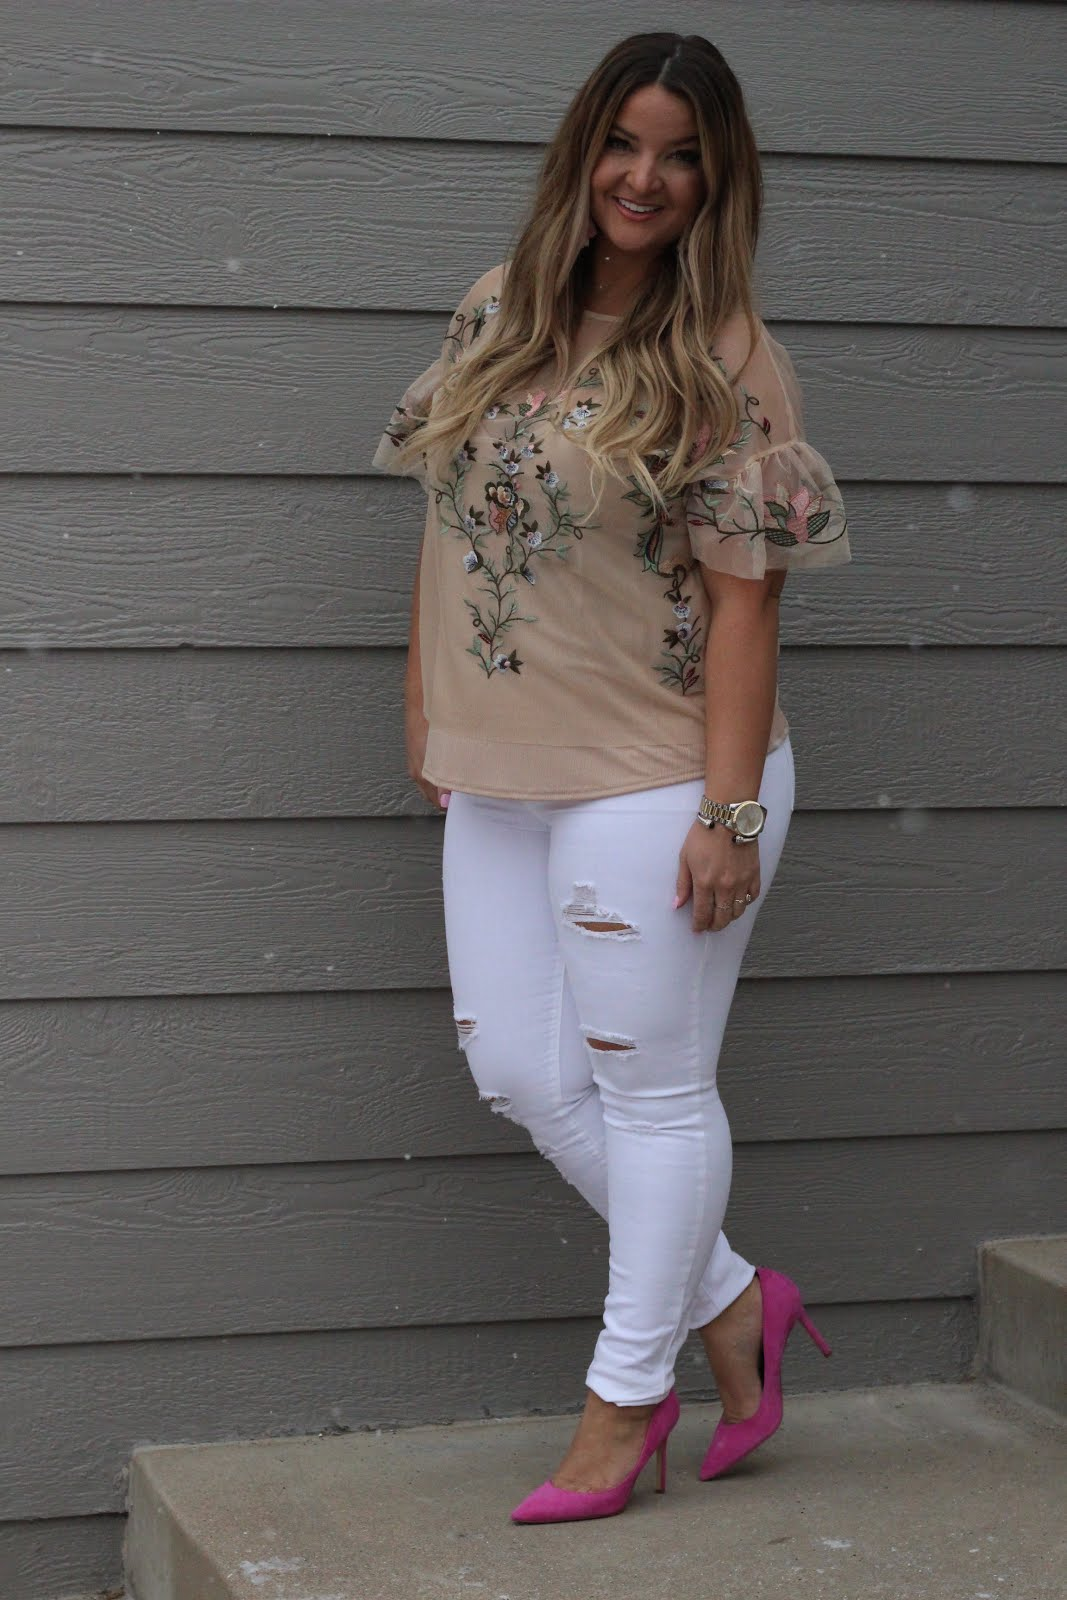 For the love of Spring Florals by popular Denver fashion blogger Delayna Denaye